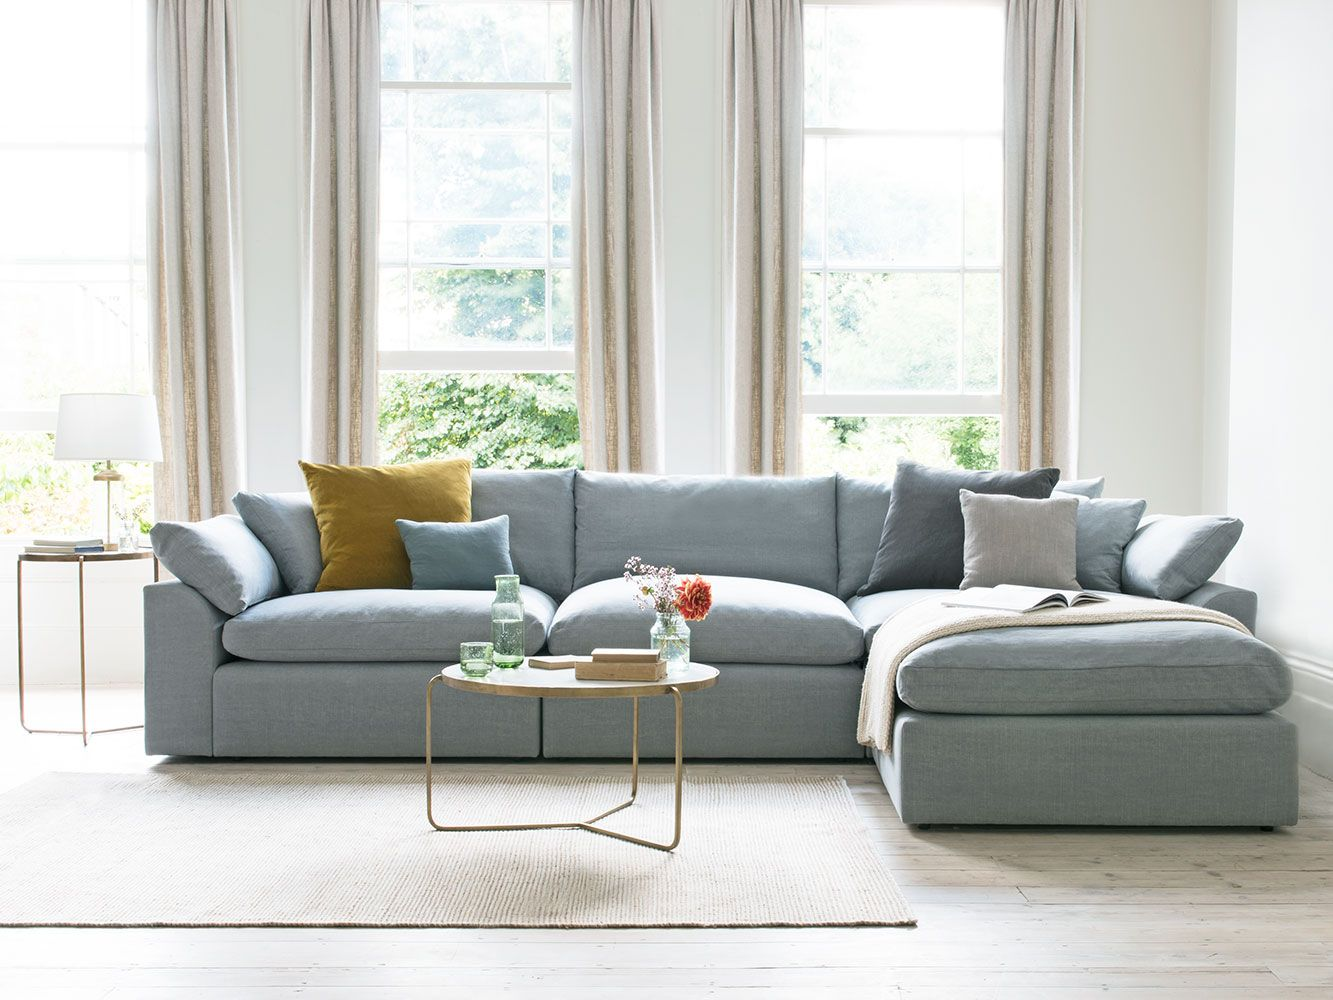 Cuddlein Modular Chaise Sofa In Our Magnesium Washed Cotton Linen